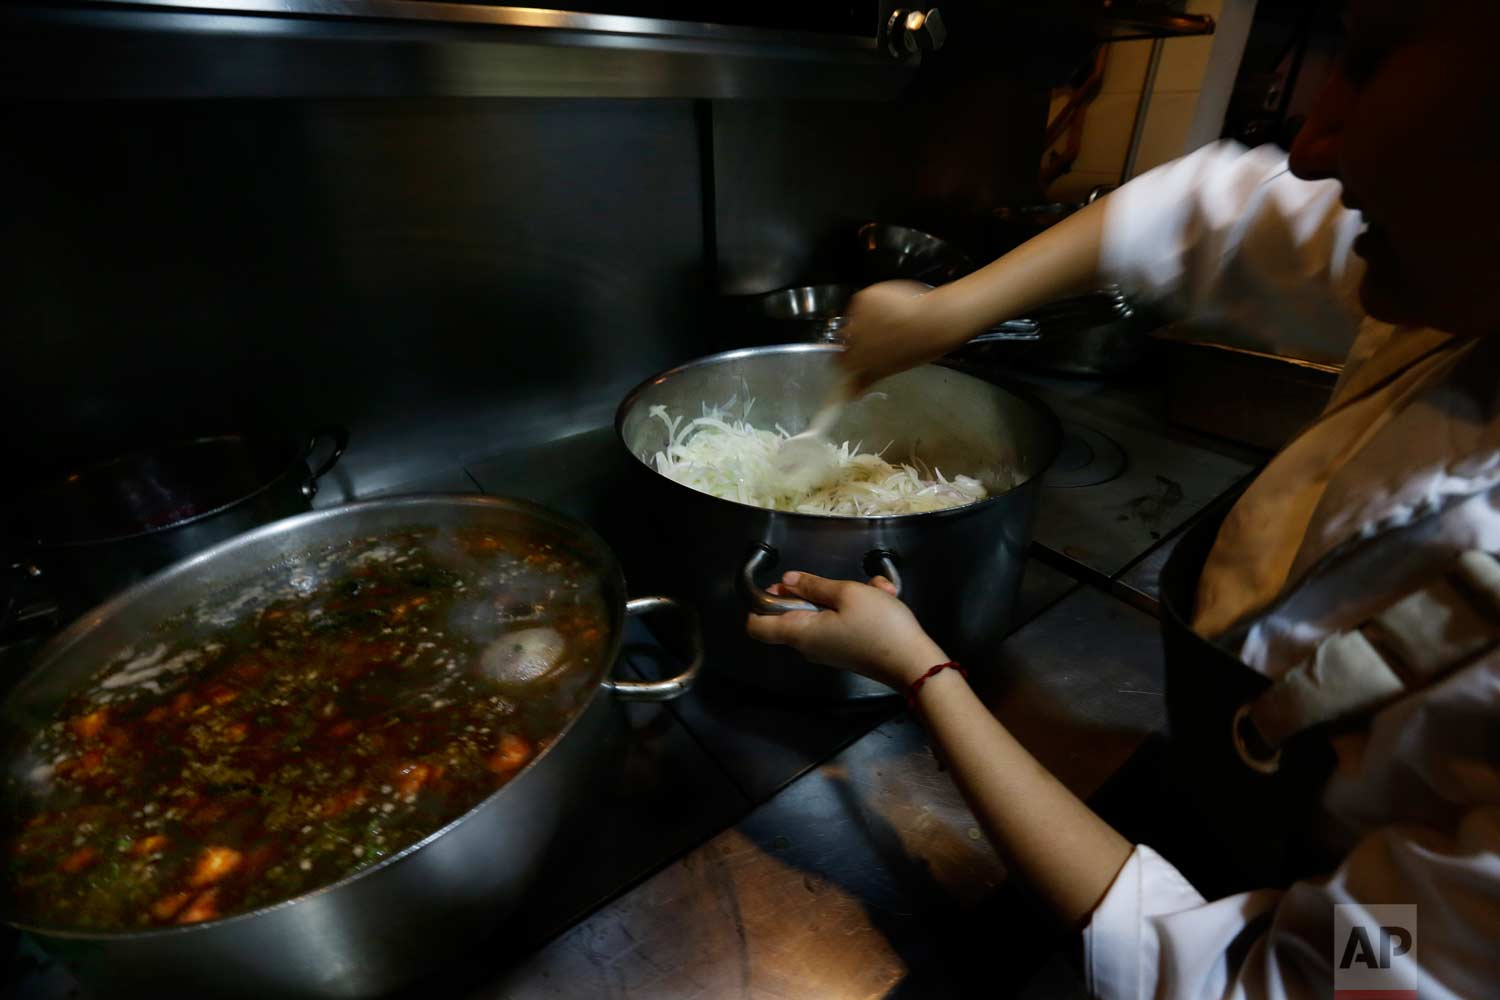 """In this July 13, 2017 photo, a kitchen staff worker cooks onions and beans with """"epazote"""" herbs at the Maximo Bistrot restaurant in Mexico City. (AP Photo/Marco Ugarte)"""